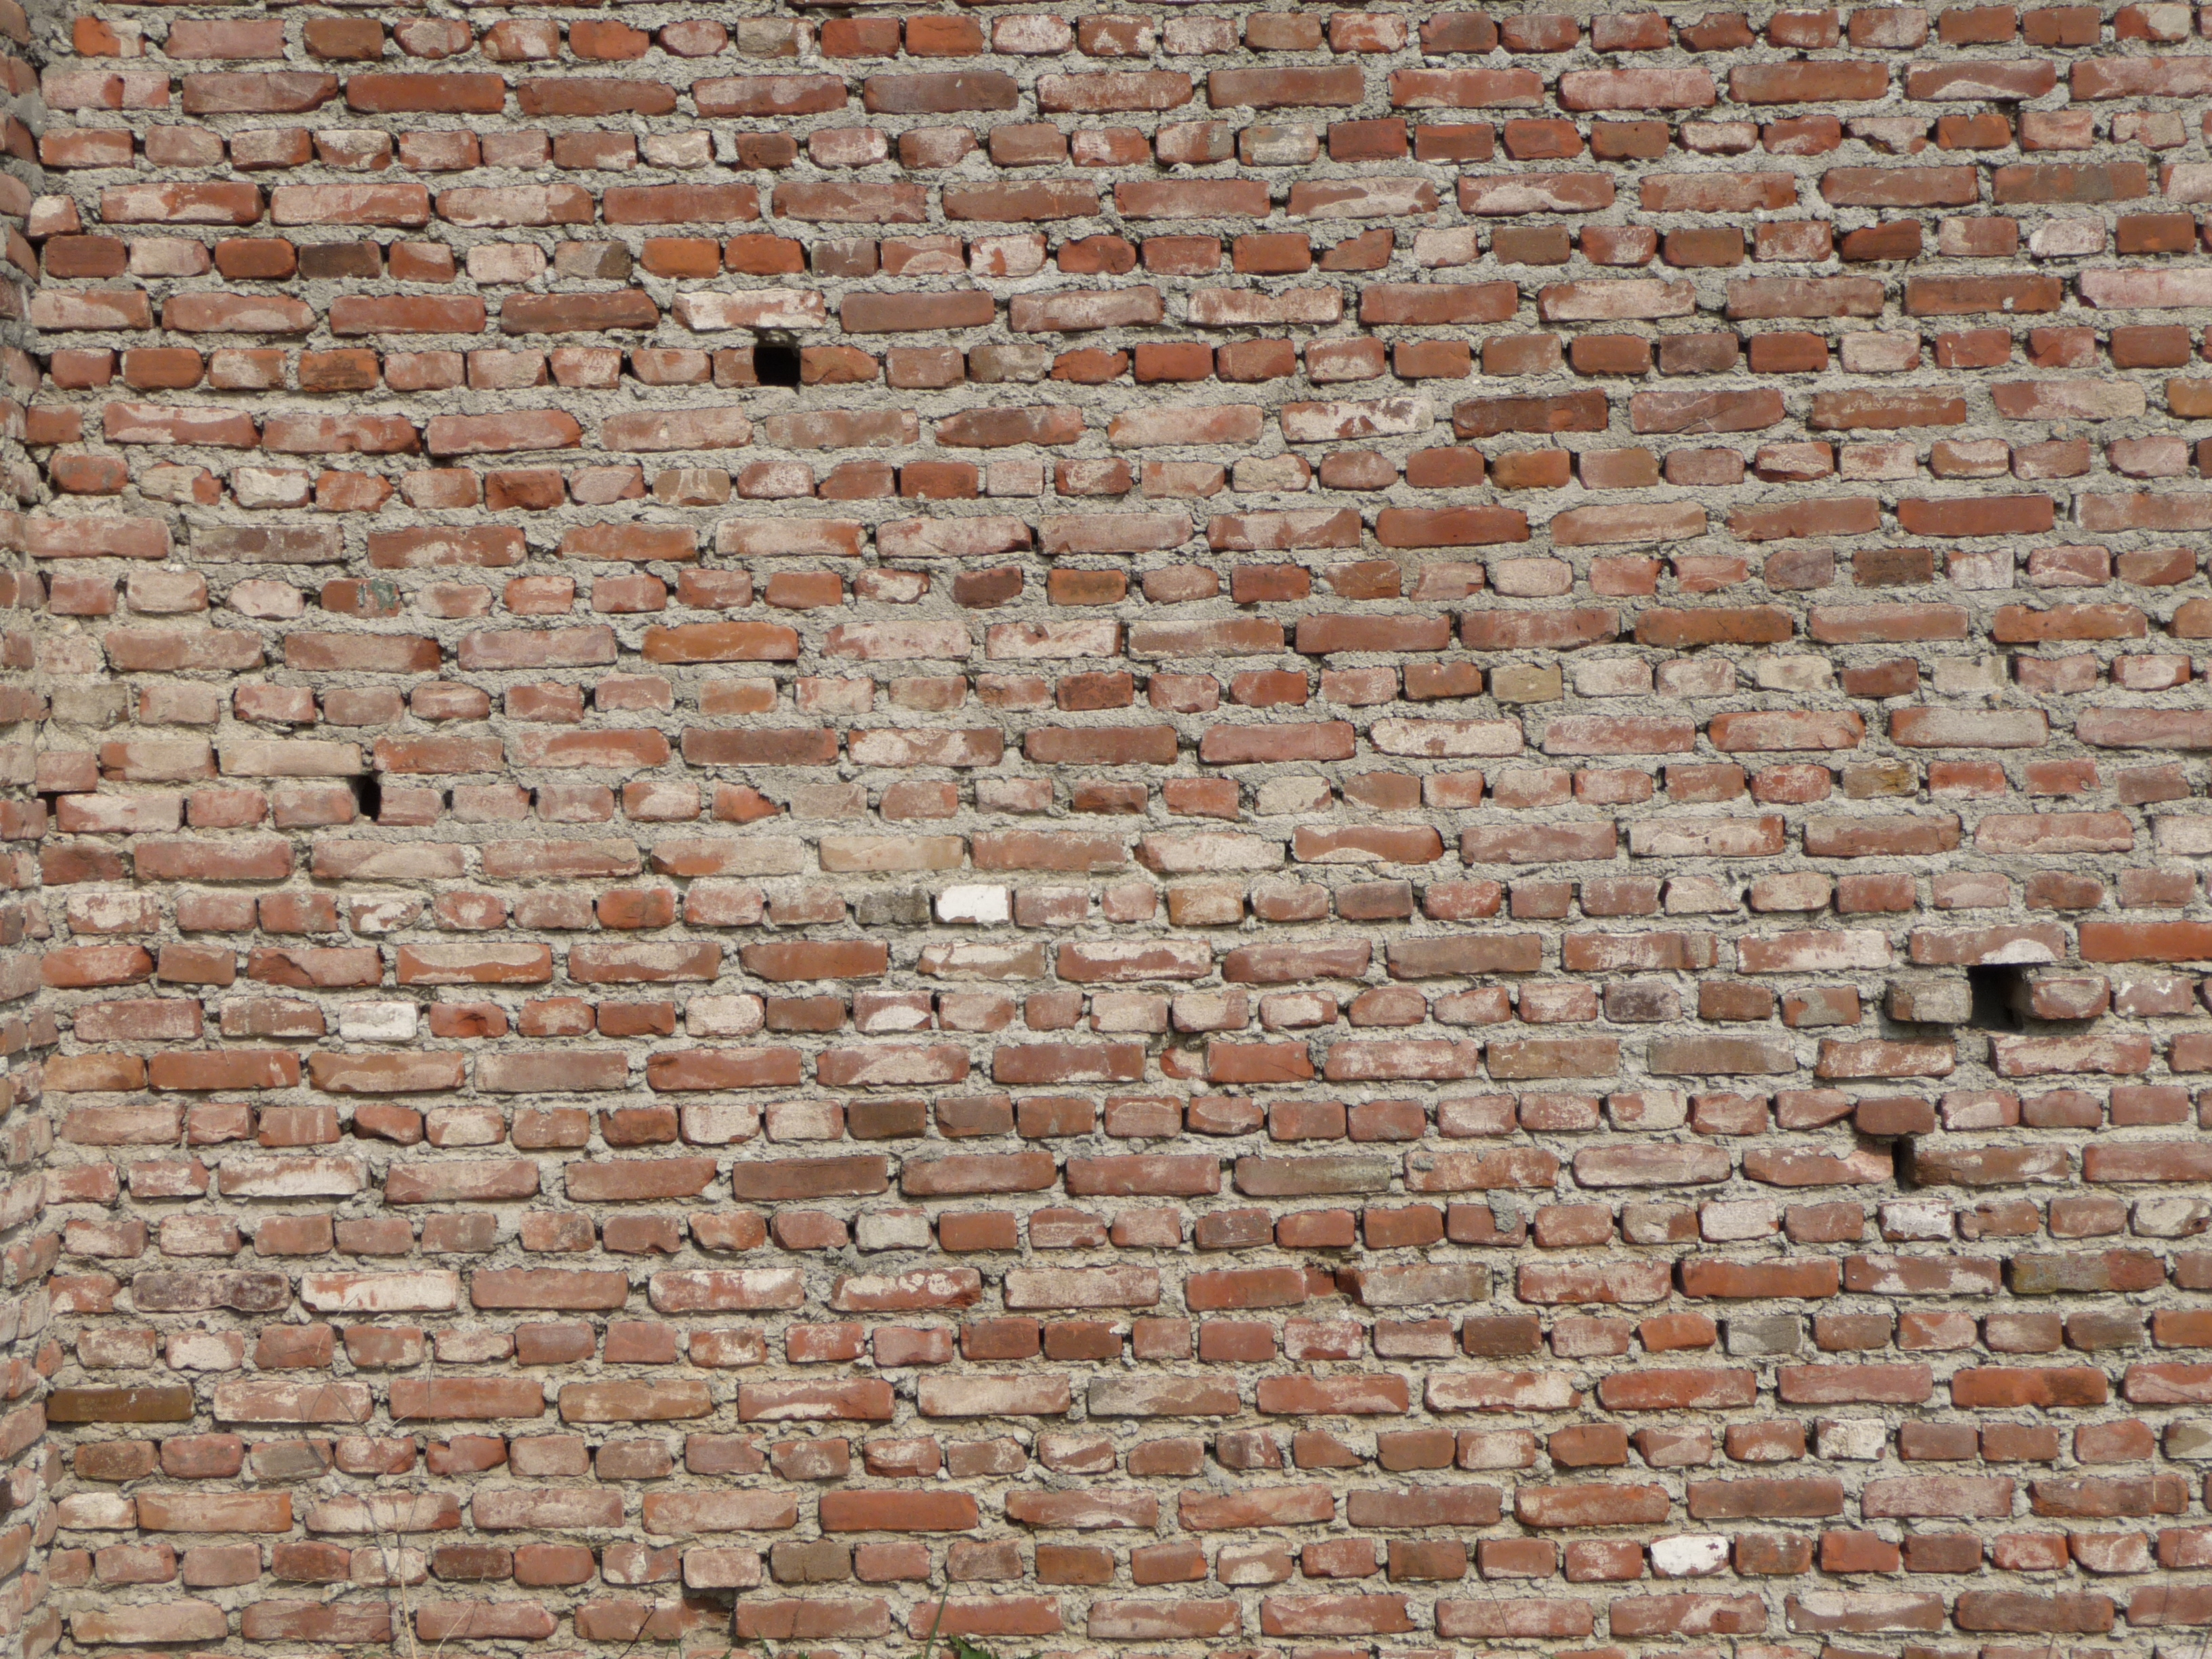 Bricks Texture Wallpapers And Hd Backgrounds Free Download On Picgaga